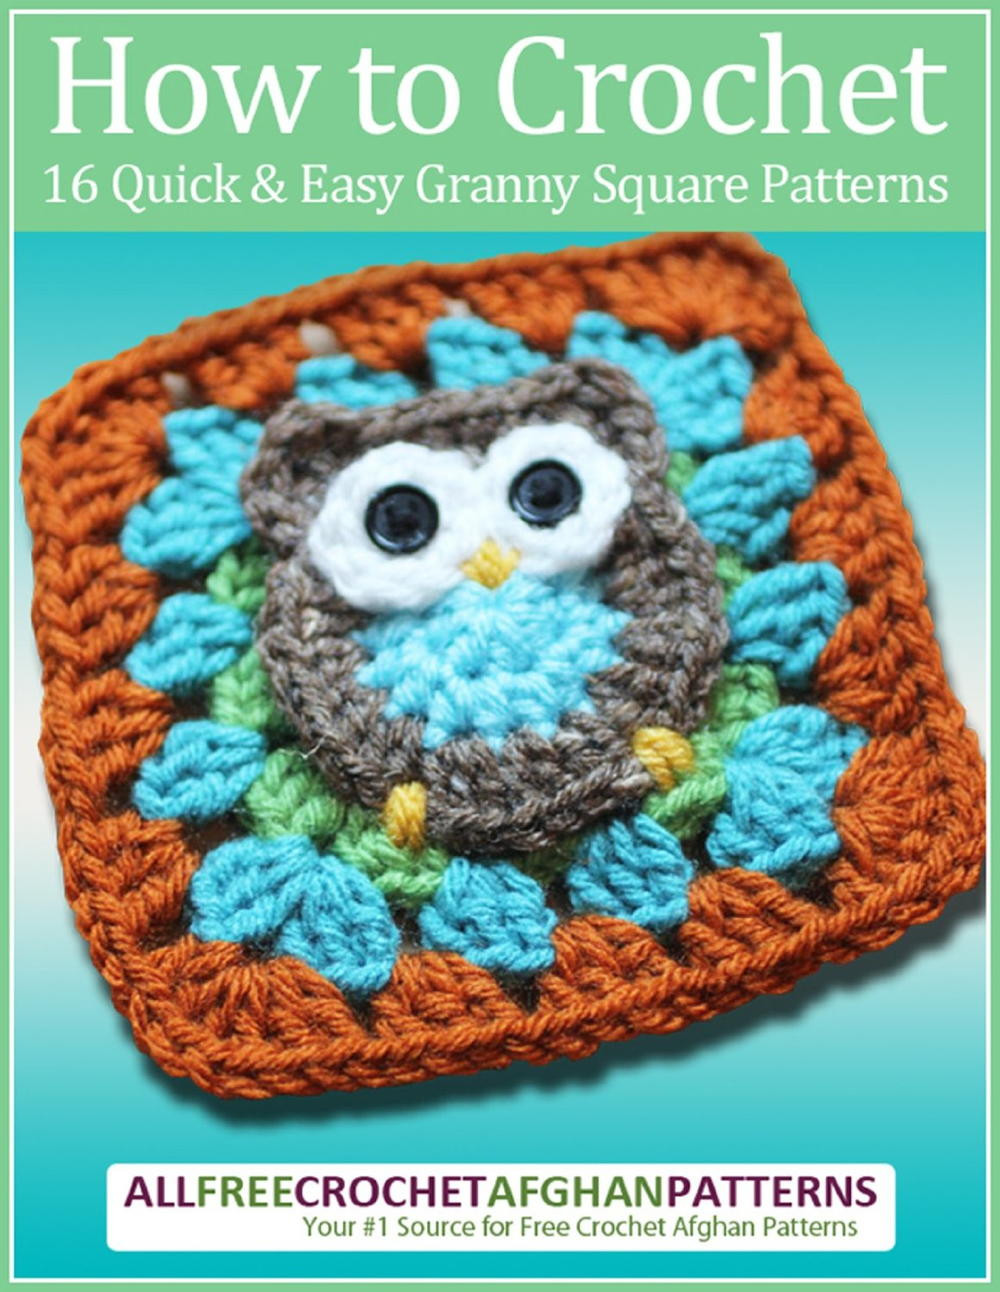 Easy Crochet Granny Squares Free Patterns New How to Crochet 16 Quick and Easy Granny Square Patterns Of Lovely 40 Ideas Easy Crochet Granny Squares Free Patterns